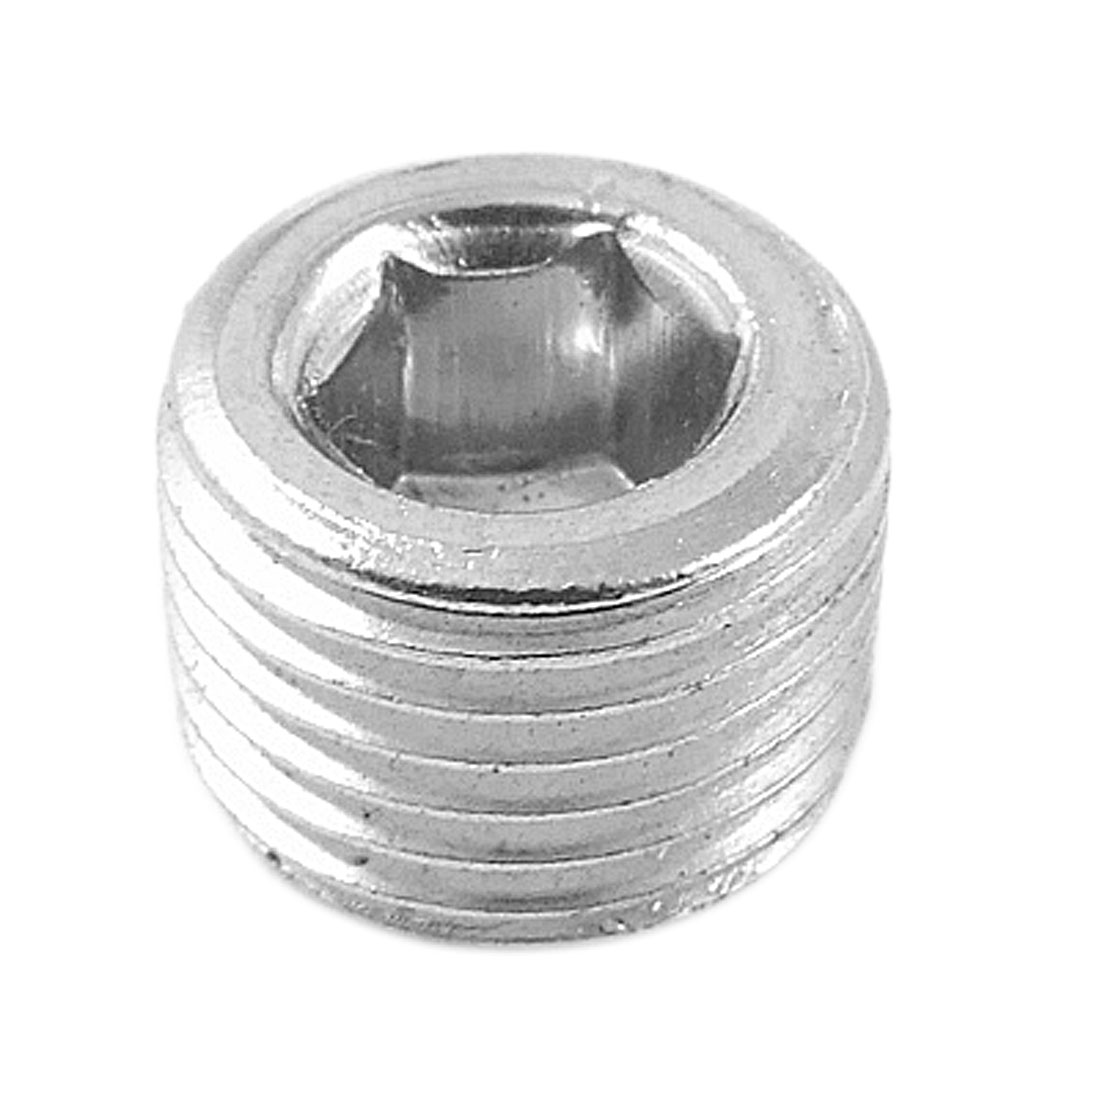 "1/8"" Thread Diameter Metal Internal Hex Head Socket Pipe Connector"